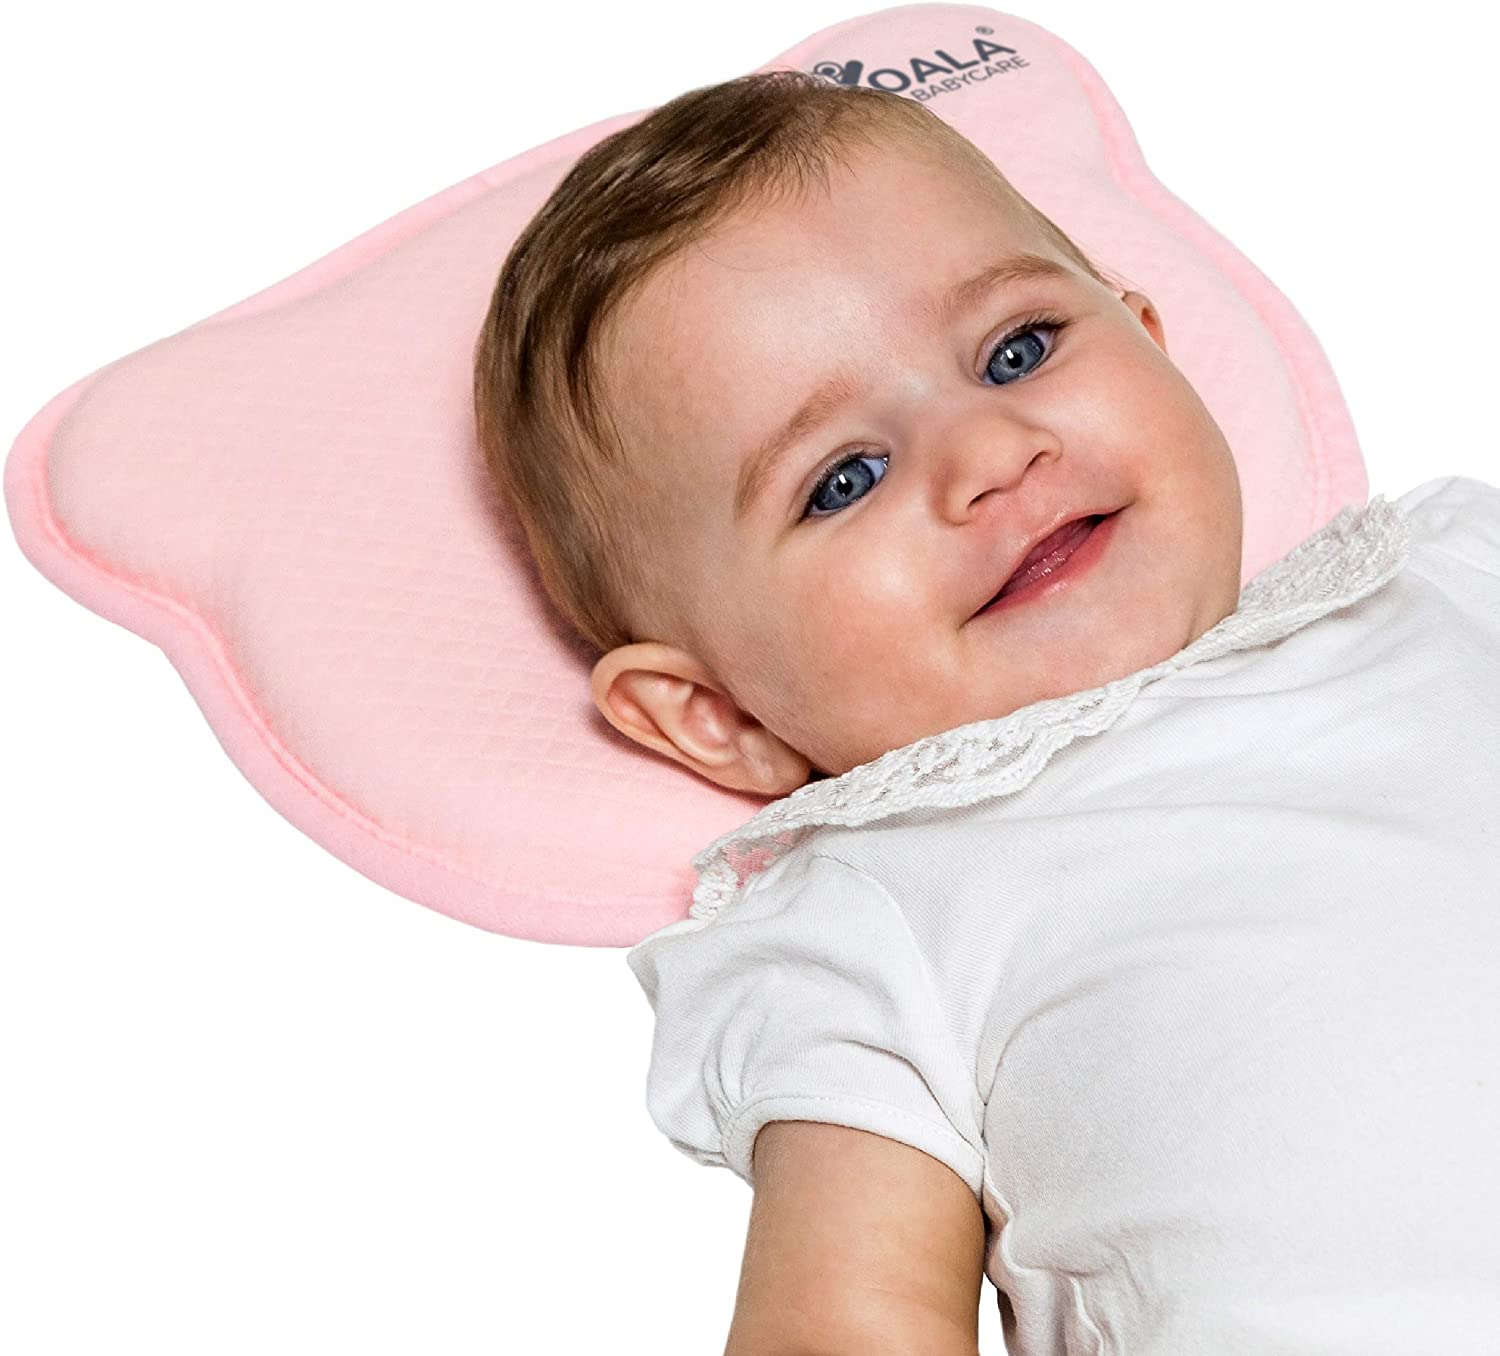 MIMOS® Baby Pillow for Baby Flat Head Syndrome (Plagiocephaly) - Airflow Safe Medical Baby Pillow (Medium)